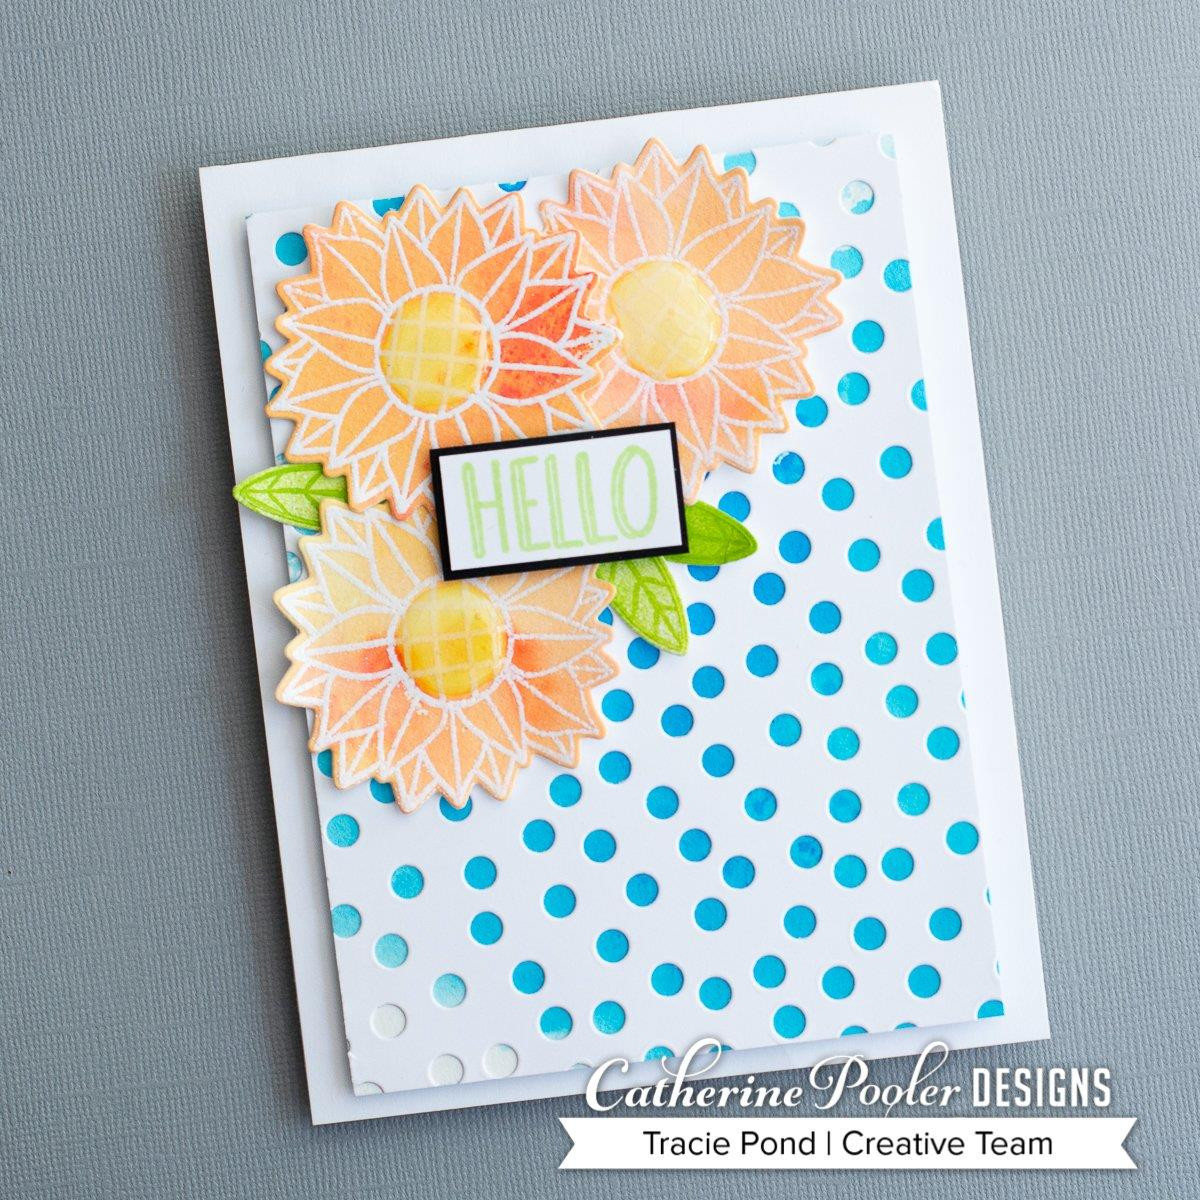 Whimsical Blooms, Catherine Pooler Clear Stamps - 8.19447E+113